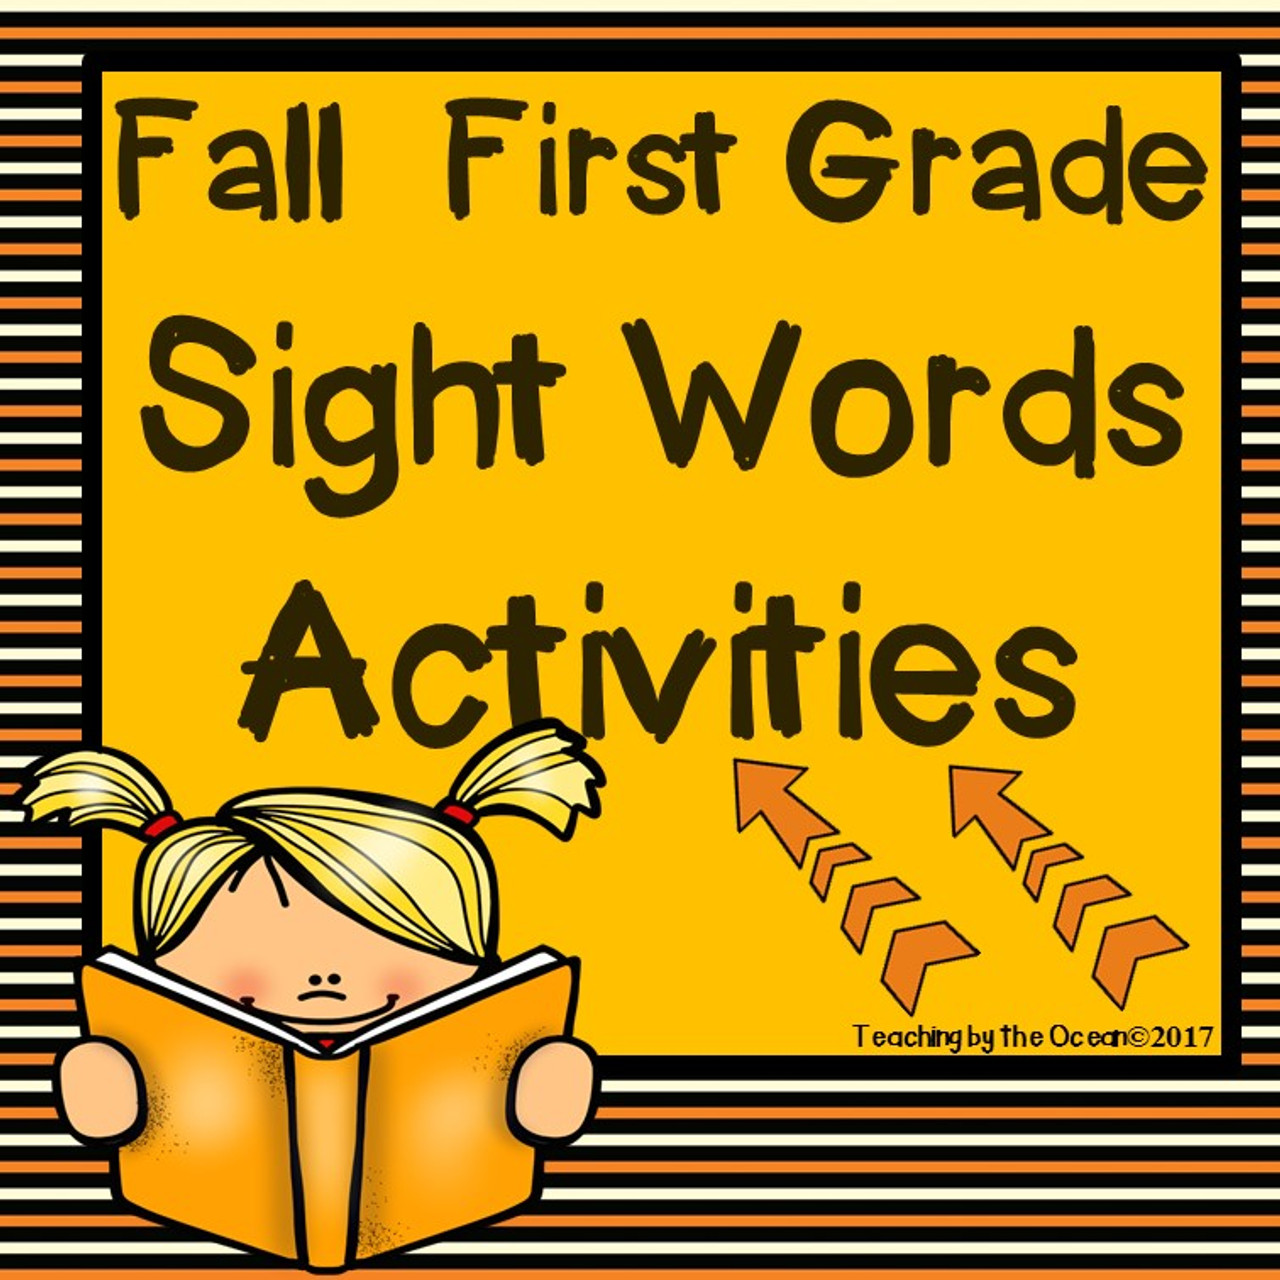 First Grade Sight Words Worksheets - Fall Themed [ 1280 x 1280 Pixel ]